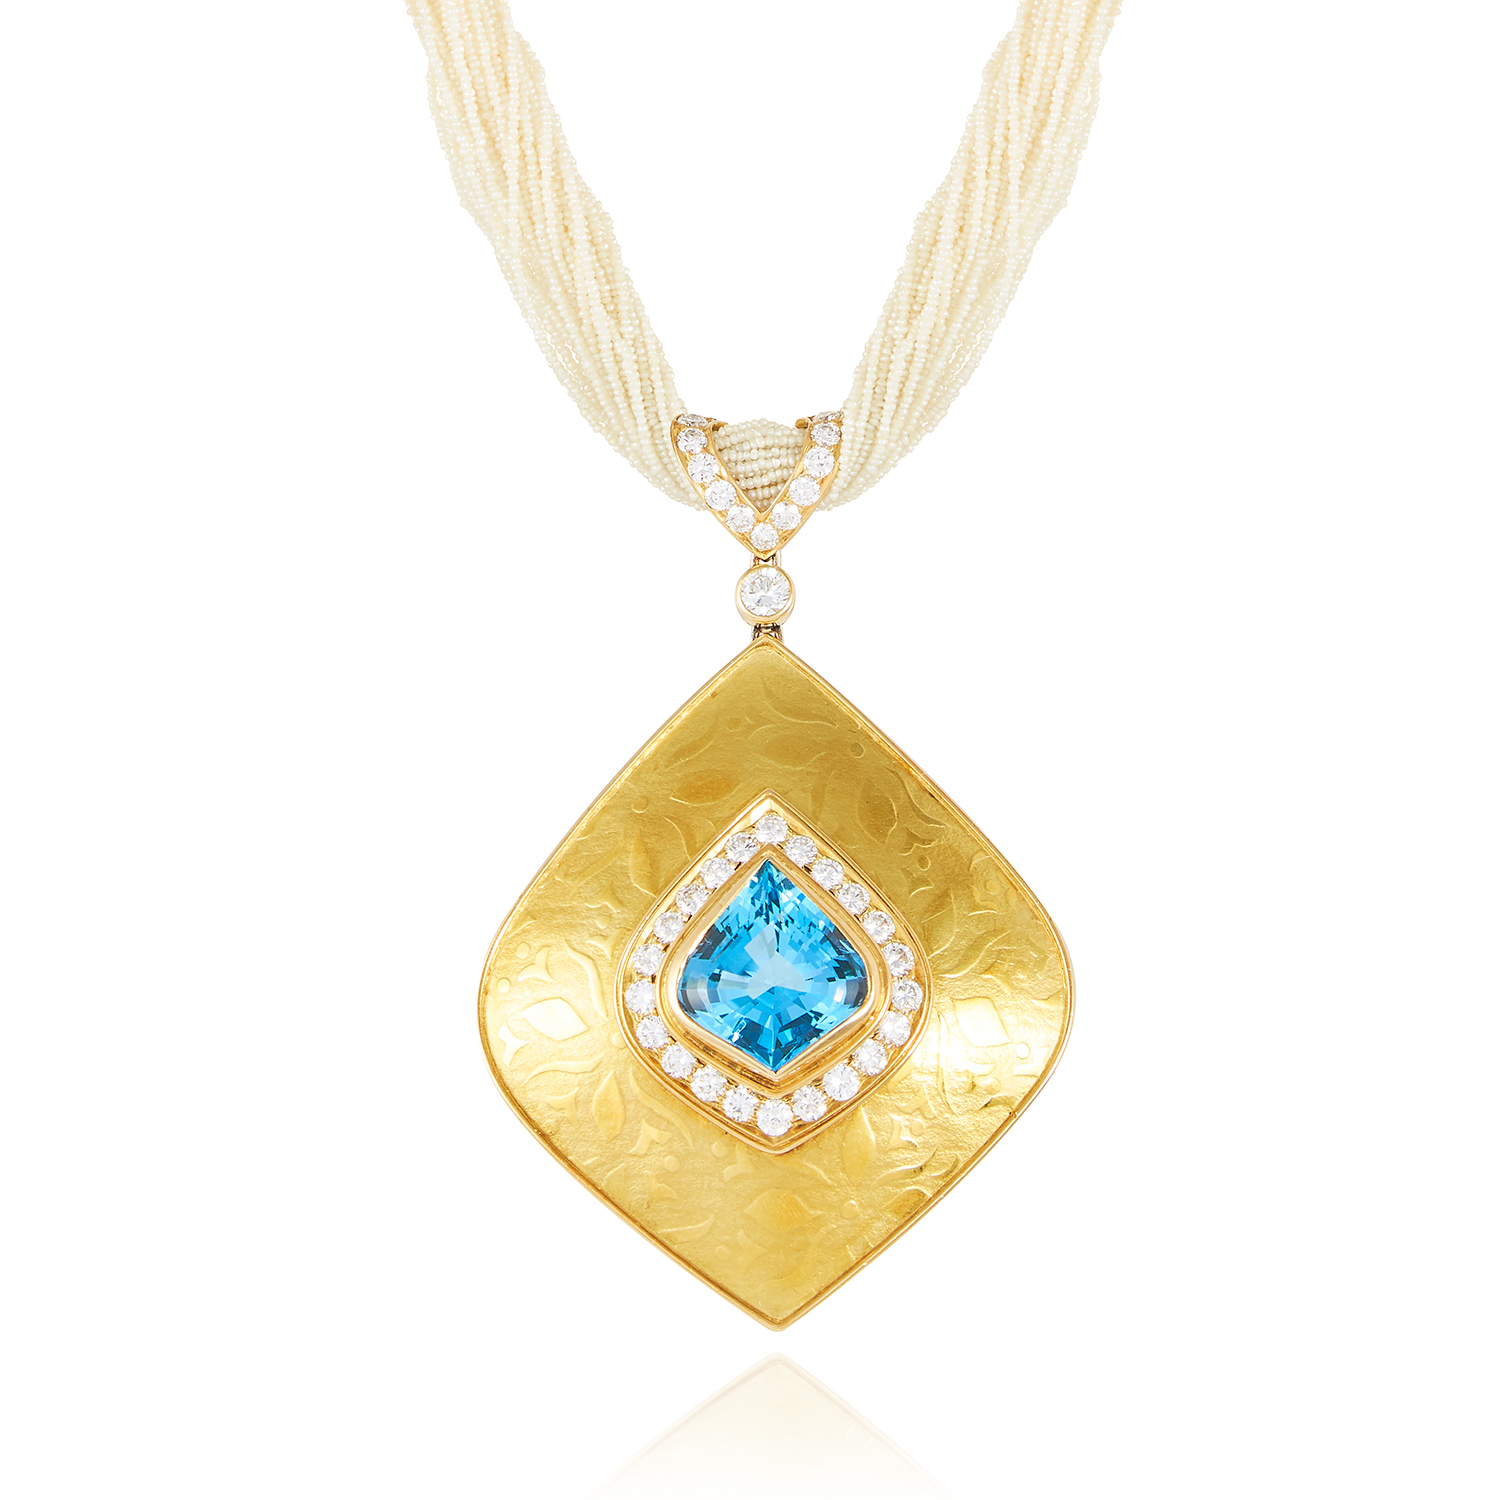 A TOPAZ, DIAMOND AND SEED PEARL PENDANT NECKLACE in 18ct yellow gold, the fancy kite shaped blue